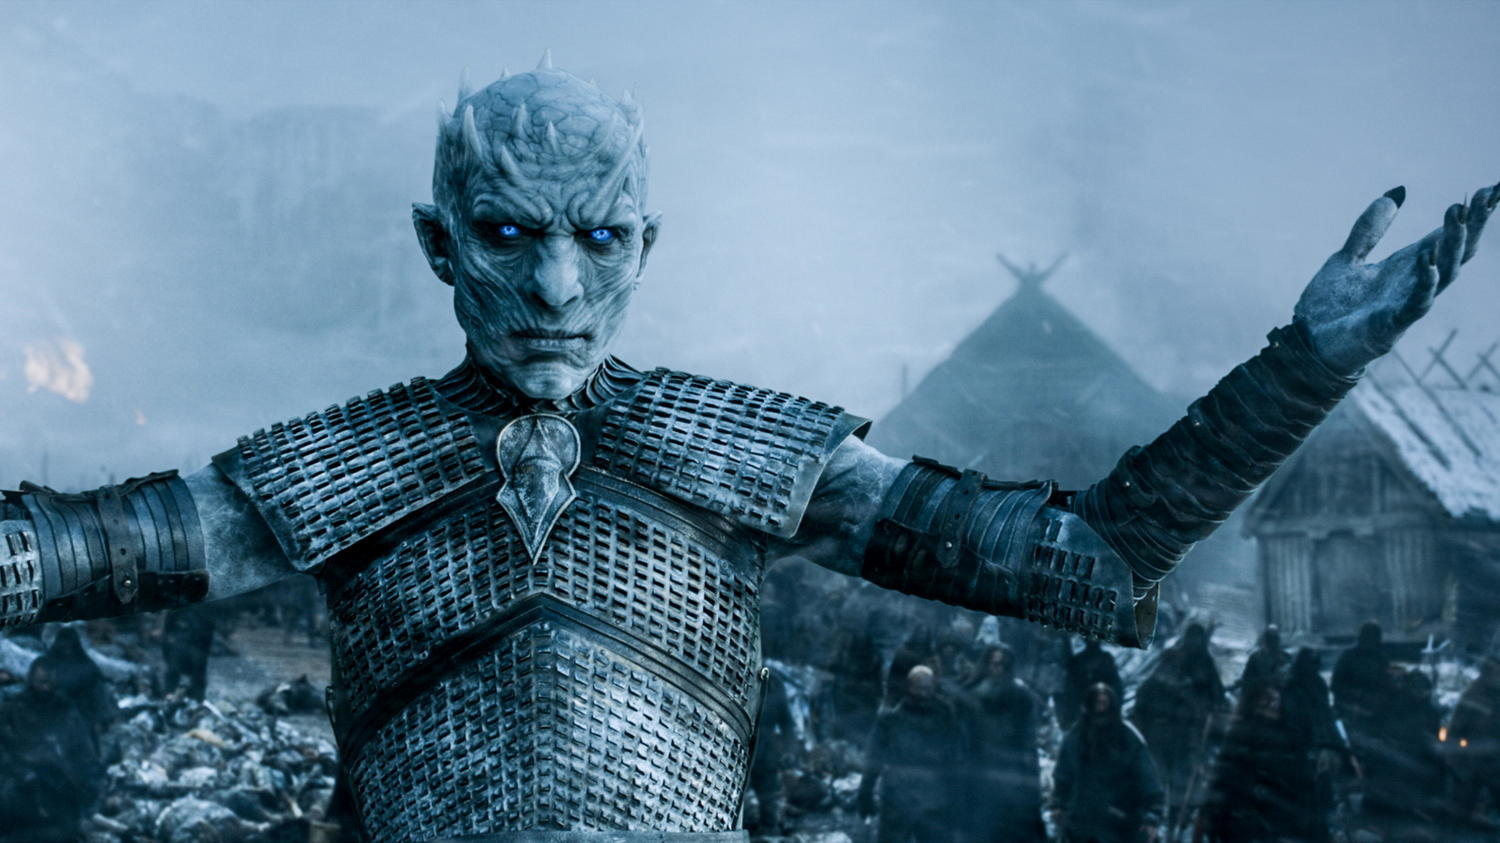 2. The White Walkers